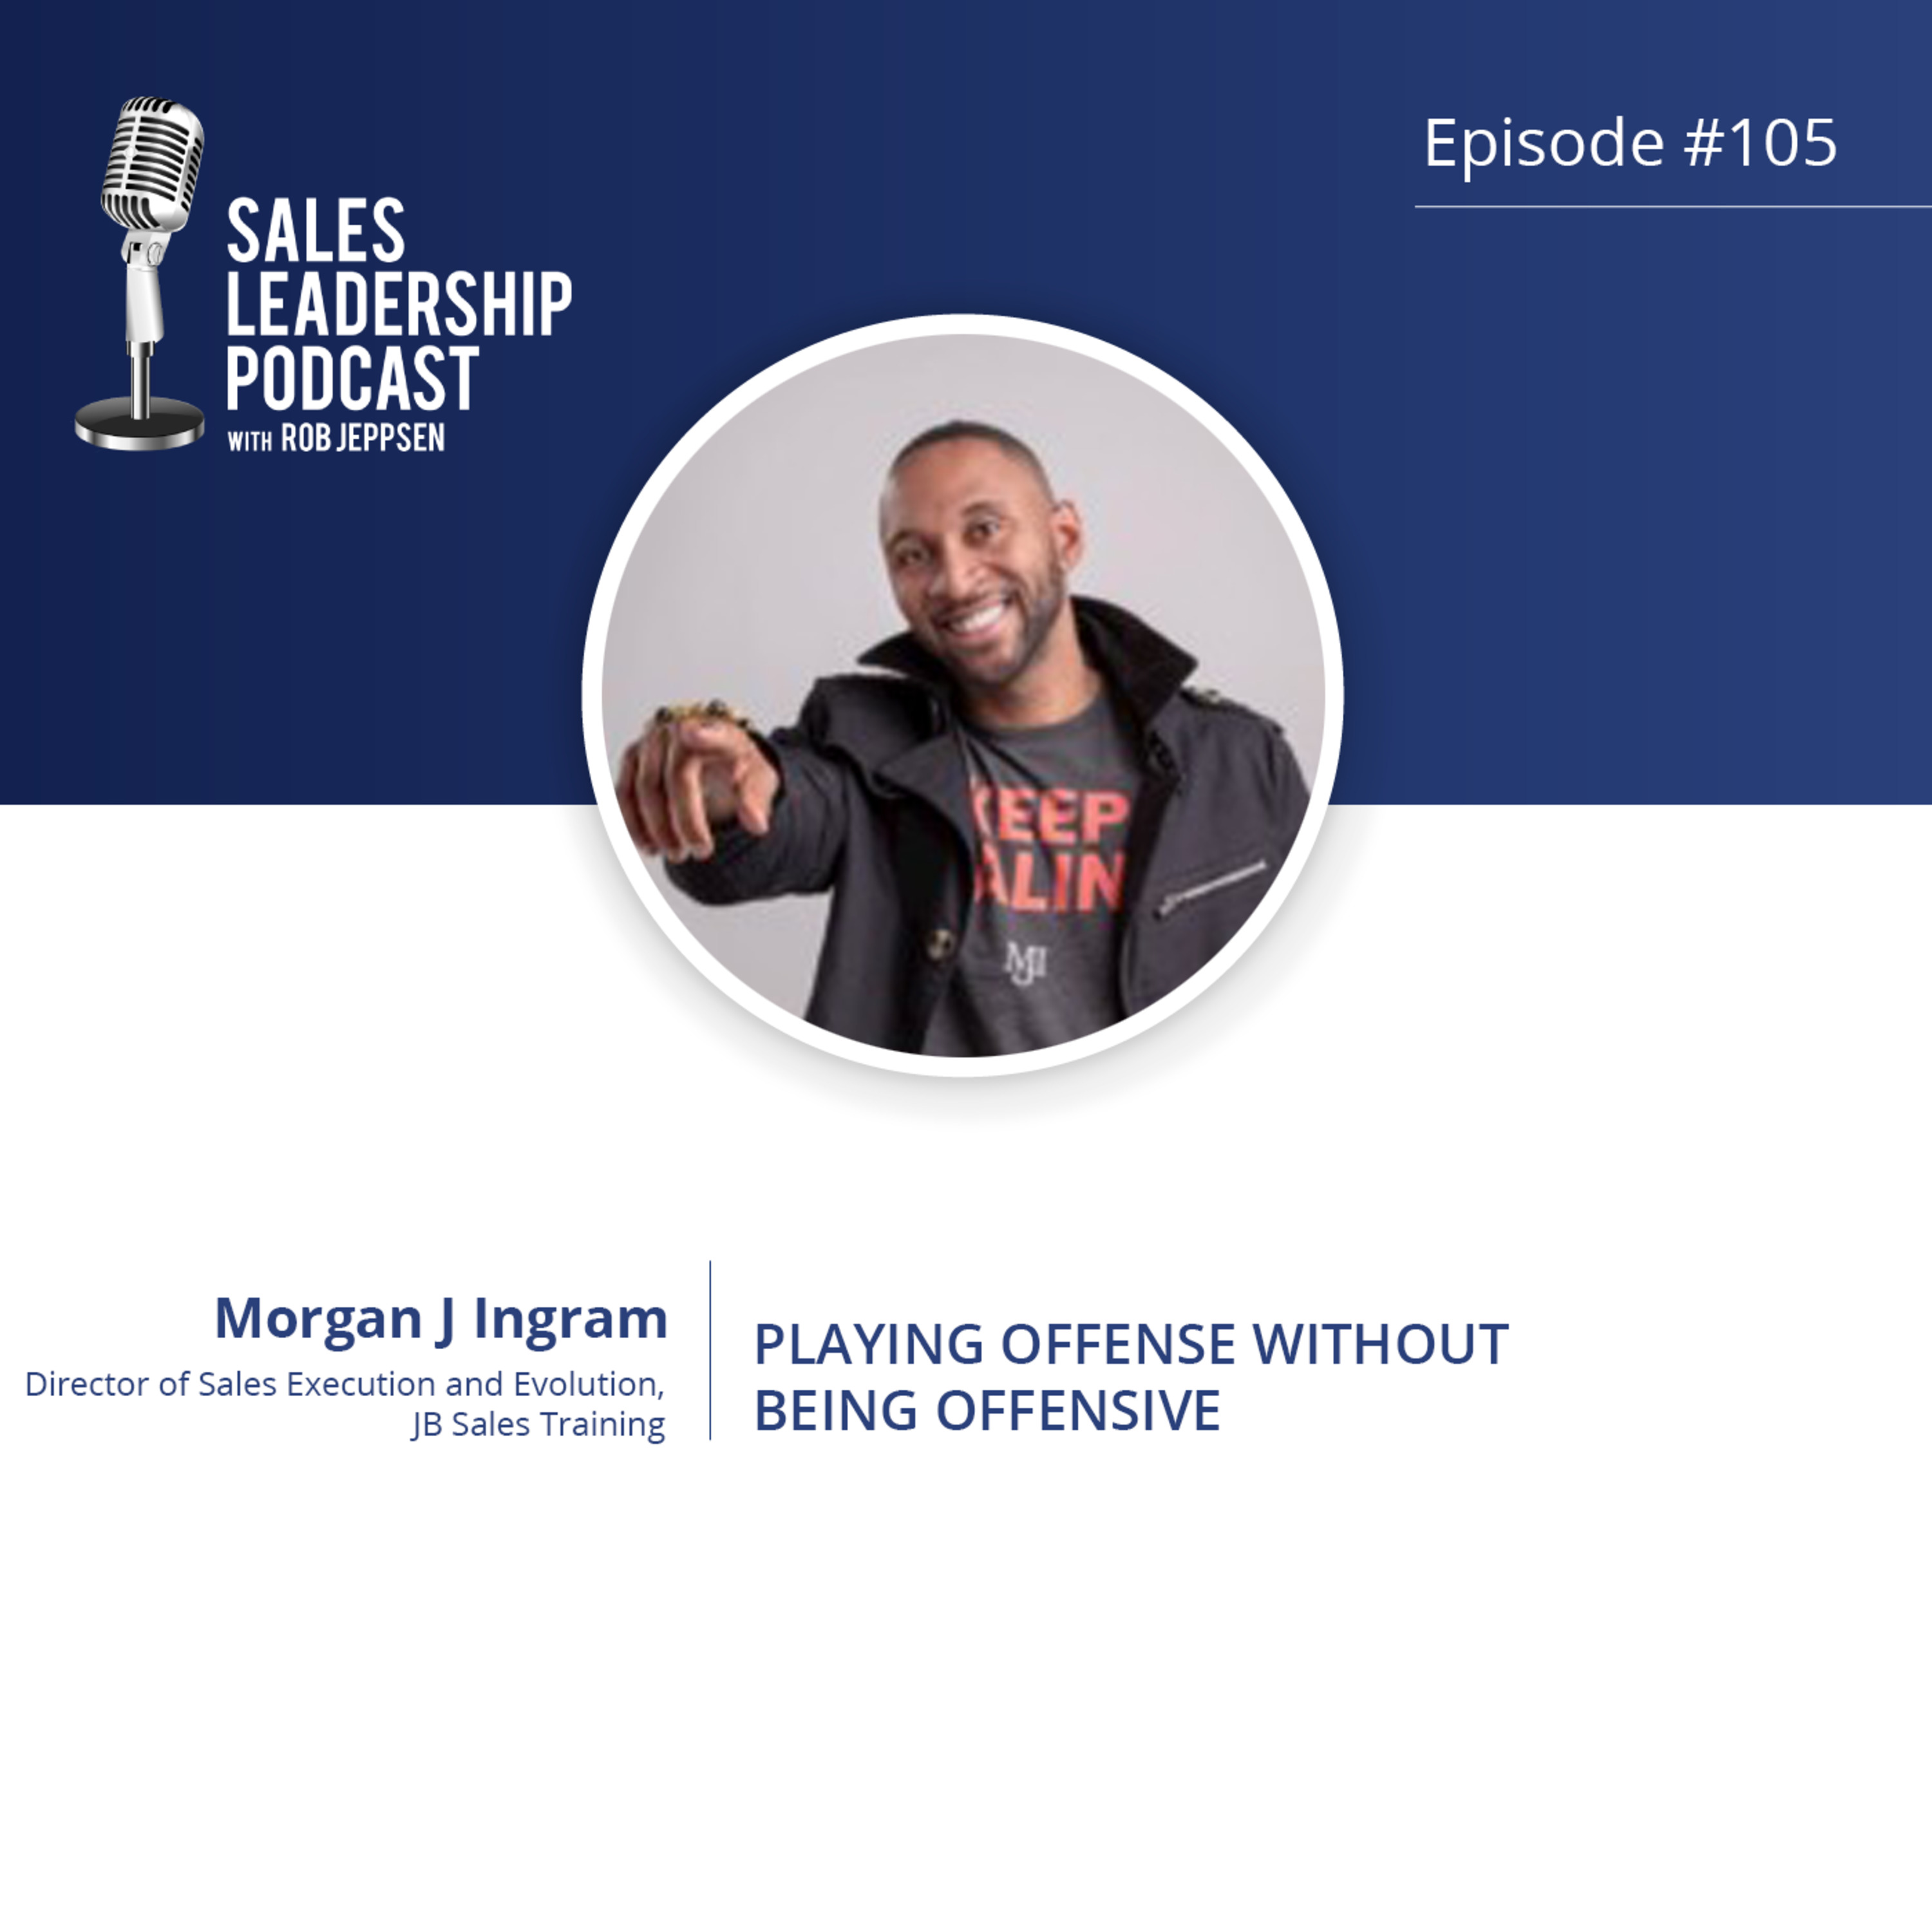 Episode 105: #105: Morgan Ingram, Director of Sales Execution and Evolution — Playing Offense without Being Offensive